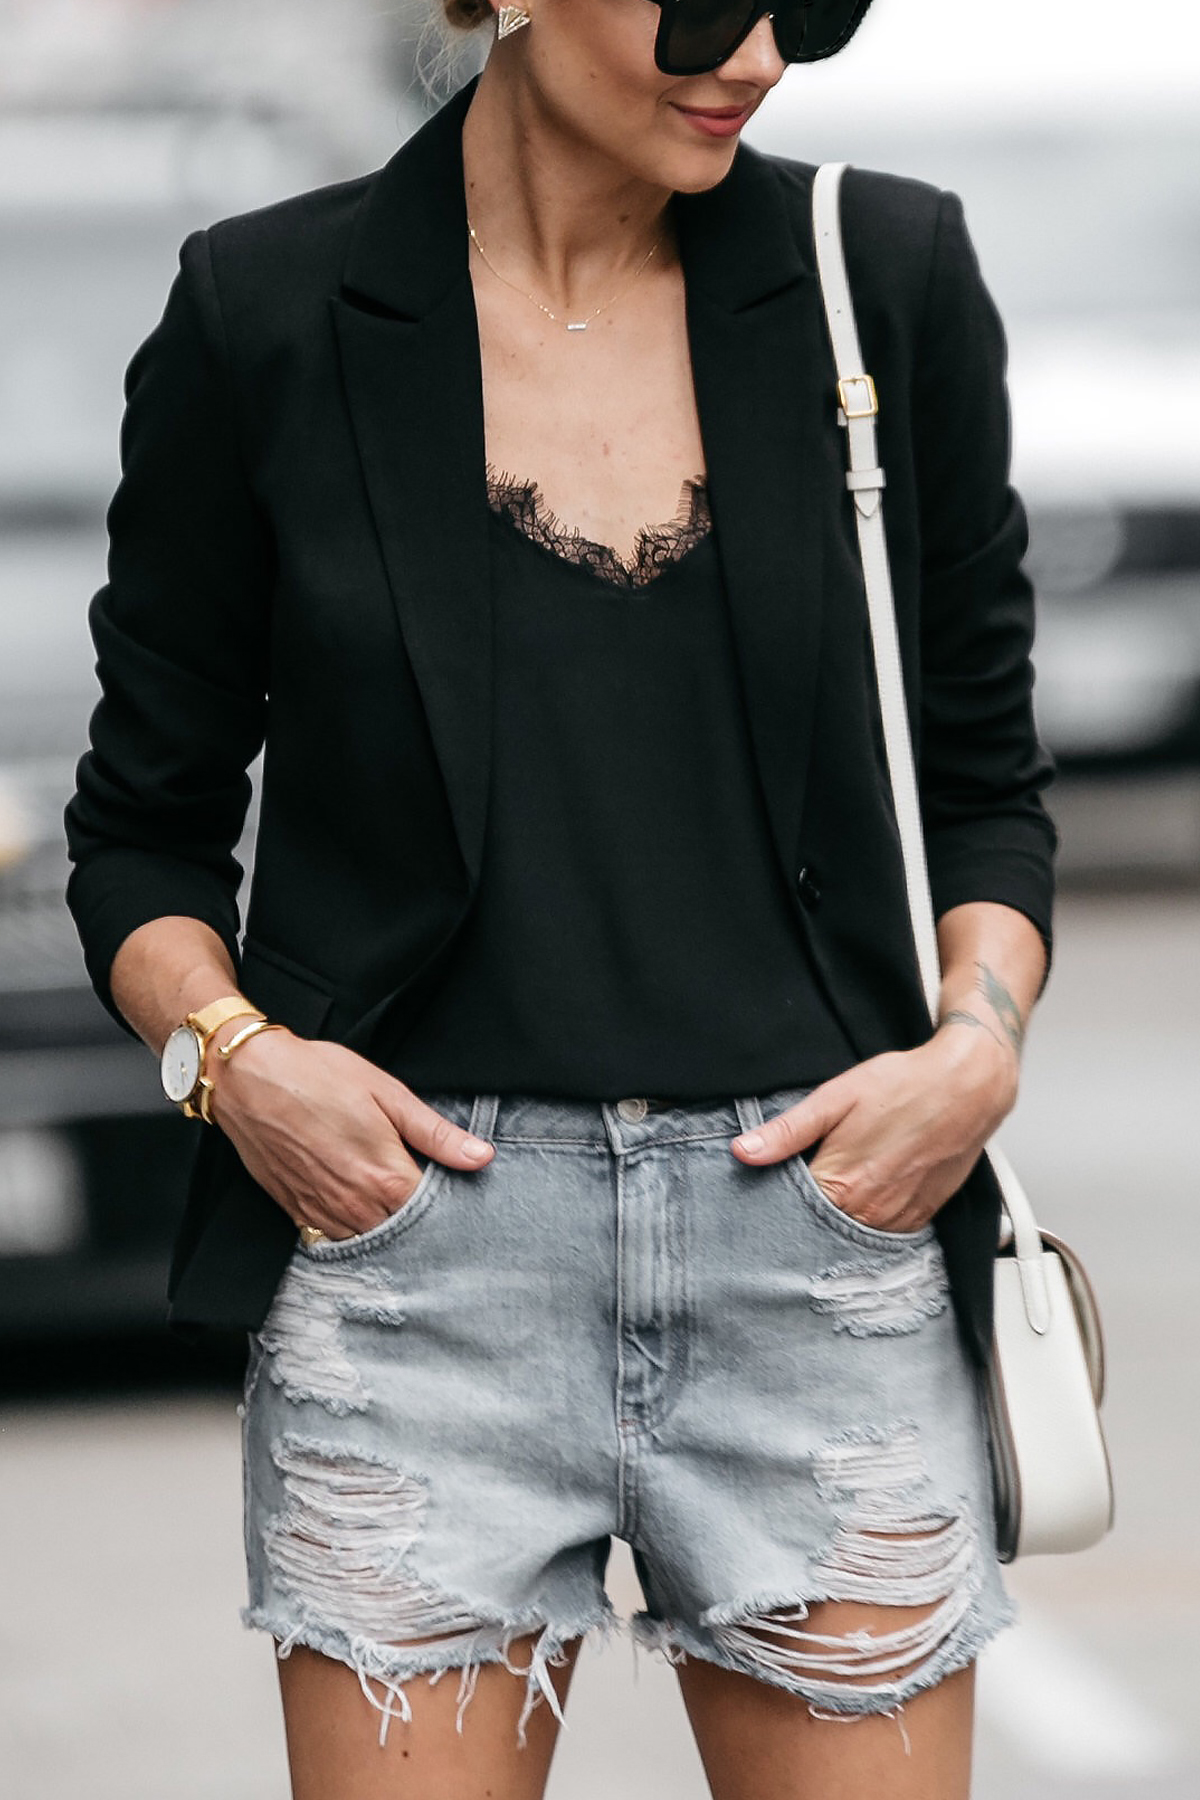 Nordstrom Black Blazer Anine Bing Black Lace Cami Topshop Denim Cutoff Shorts Outfit Street Style Dallas Blogger Fashion Blogger